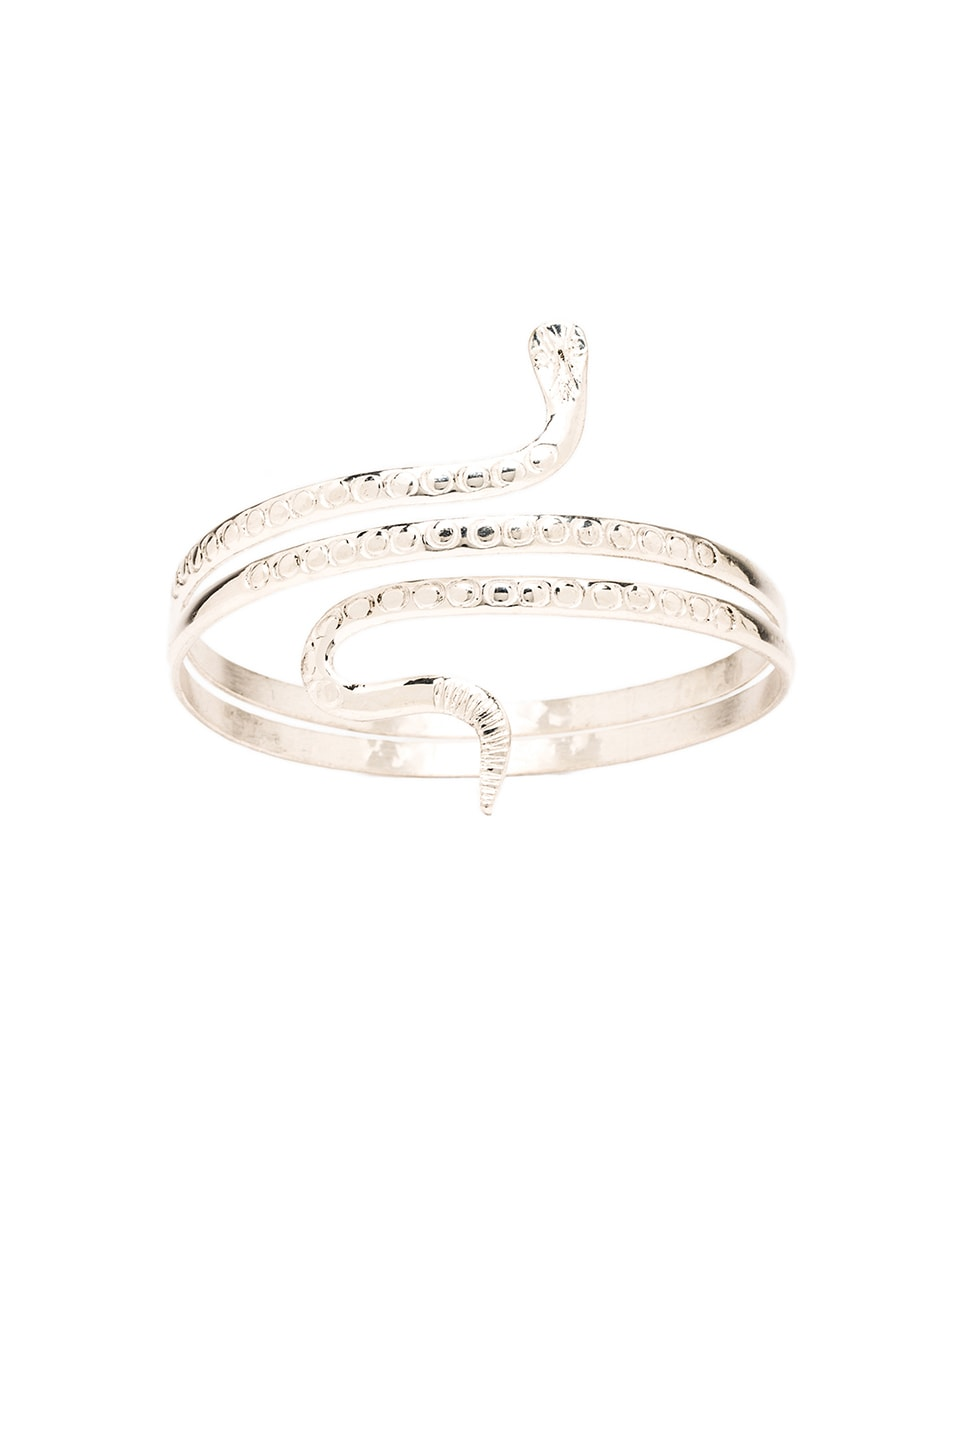 Natalie B Jewelry Serpent Armband in Silver